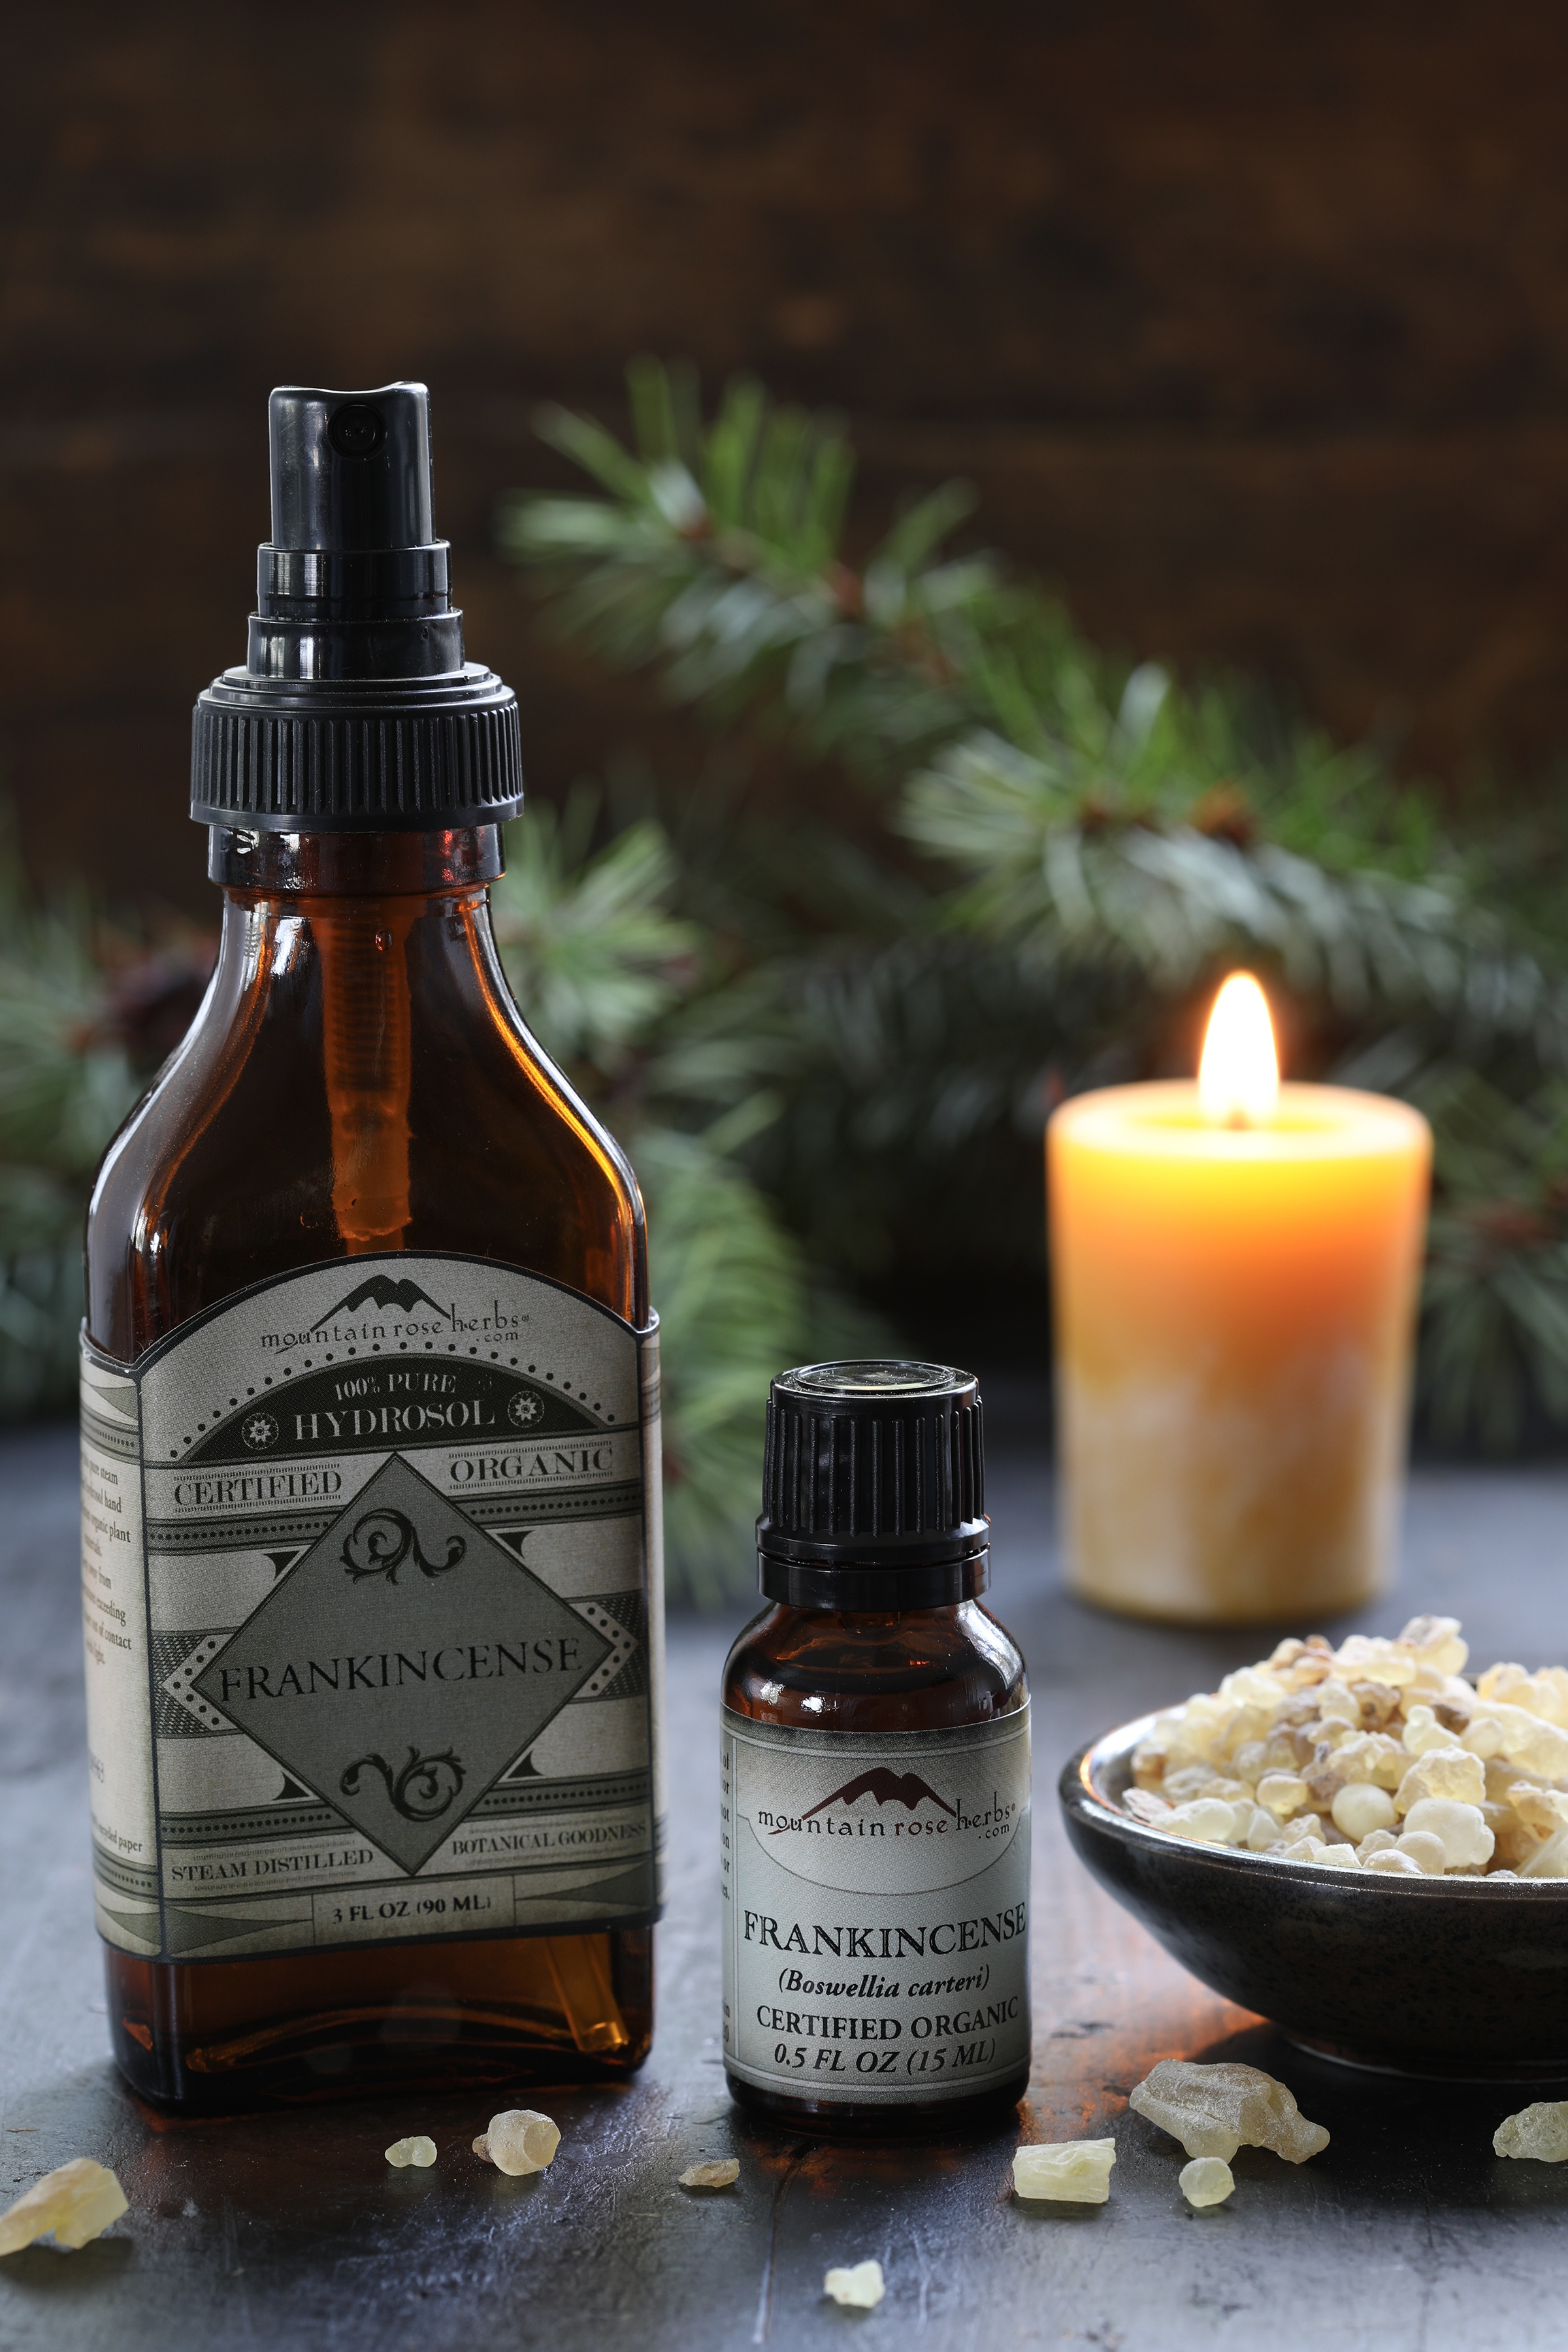 frankincense hydrosol and frankincense essential oil next to a bowl of frankincense resin with a candle in the background